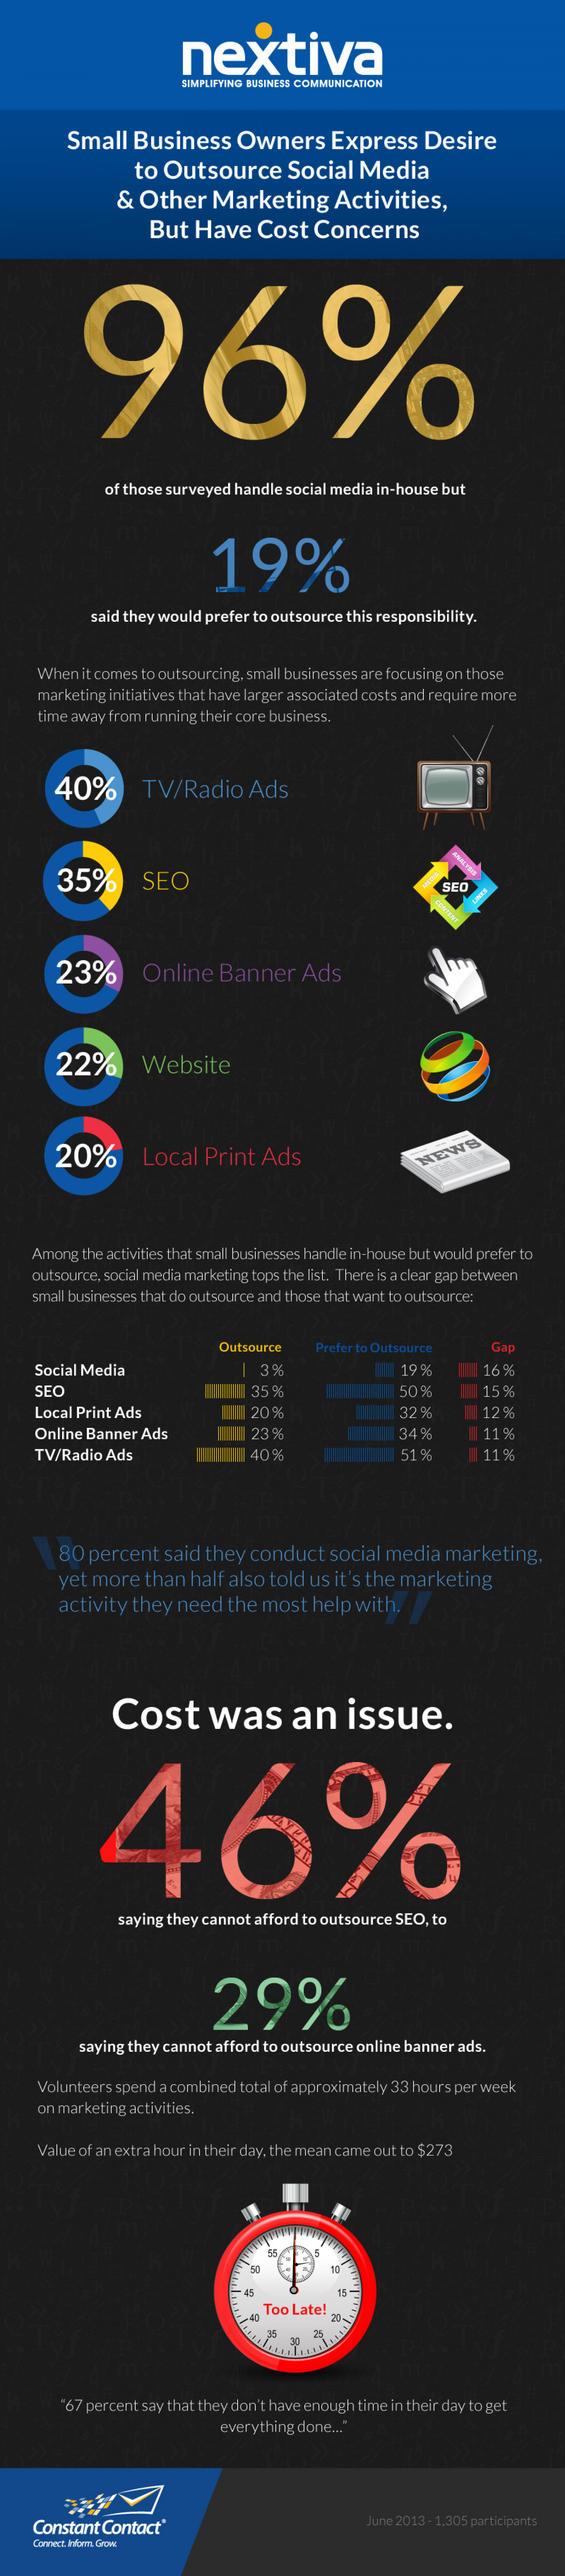 Marketing: In House VS. Outsourcing Infographic